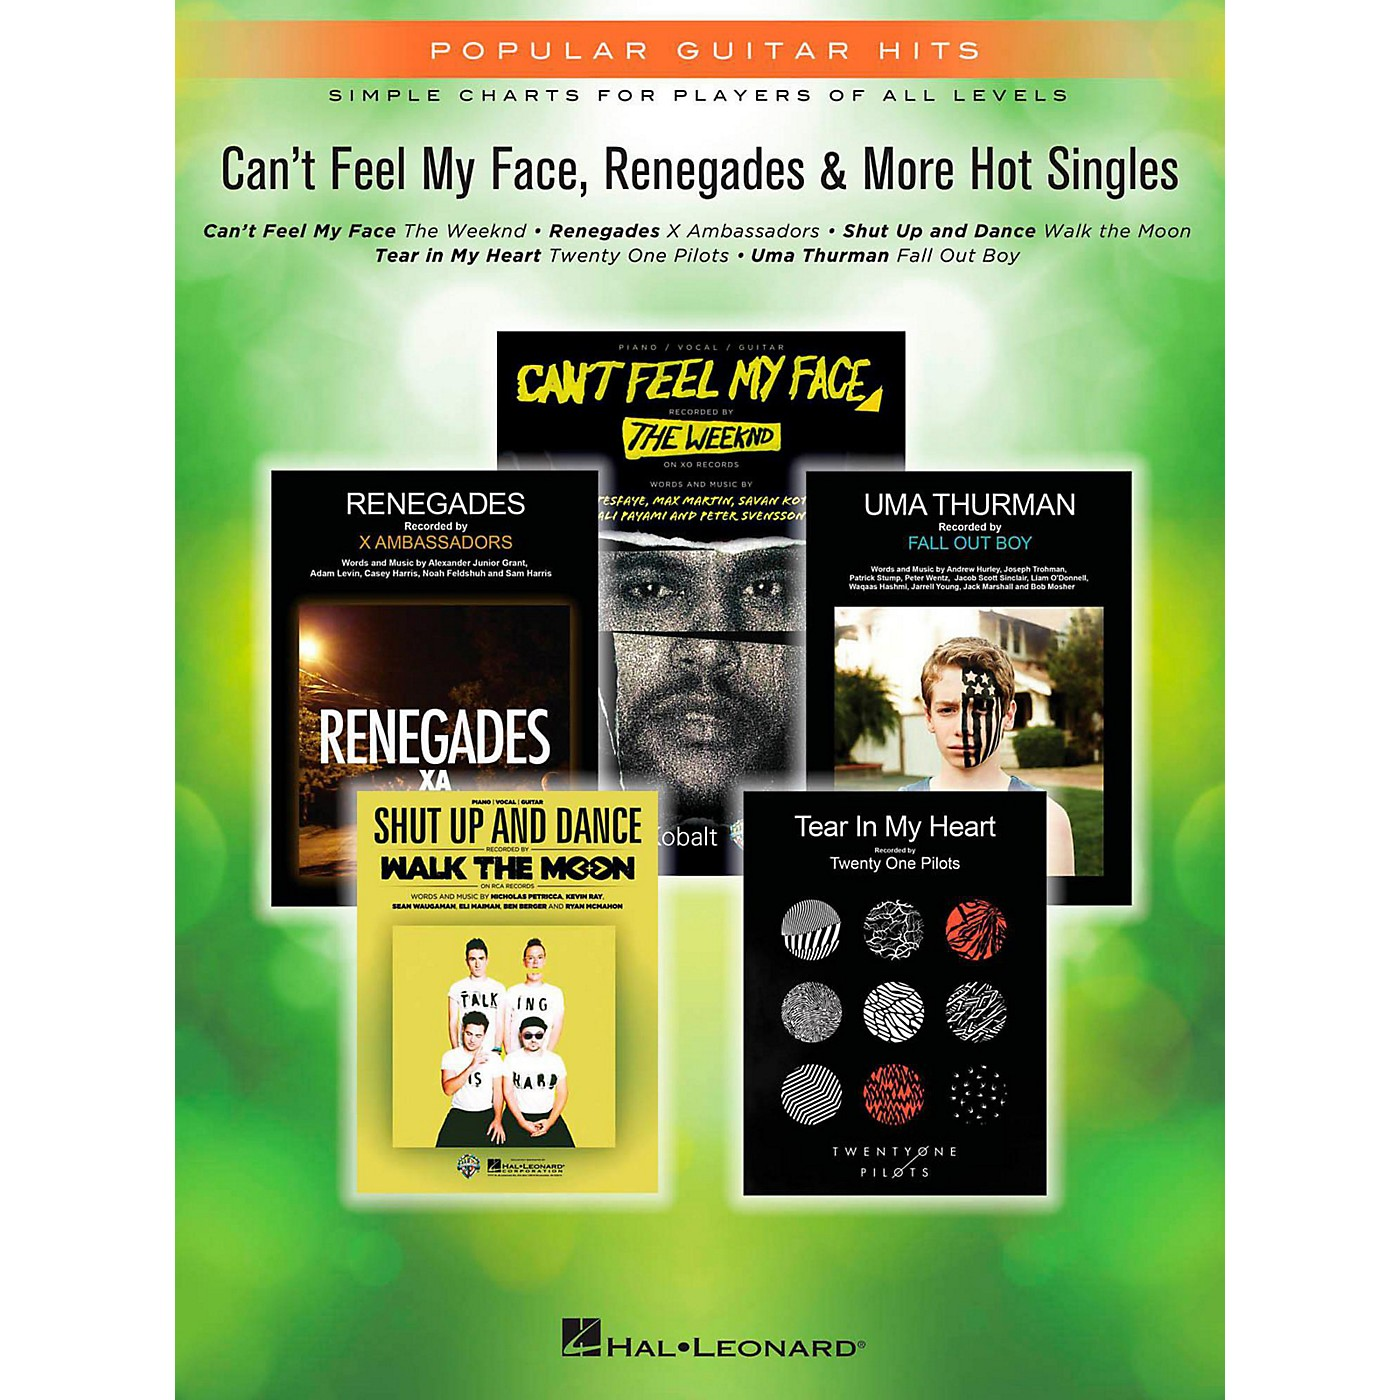 Hal Leonard Can't Feel My Face, Renegades & More Hot Singles for Easy Piano thumbnail